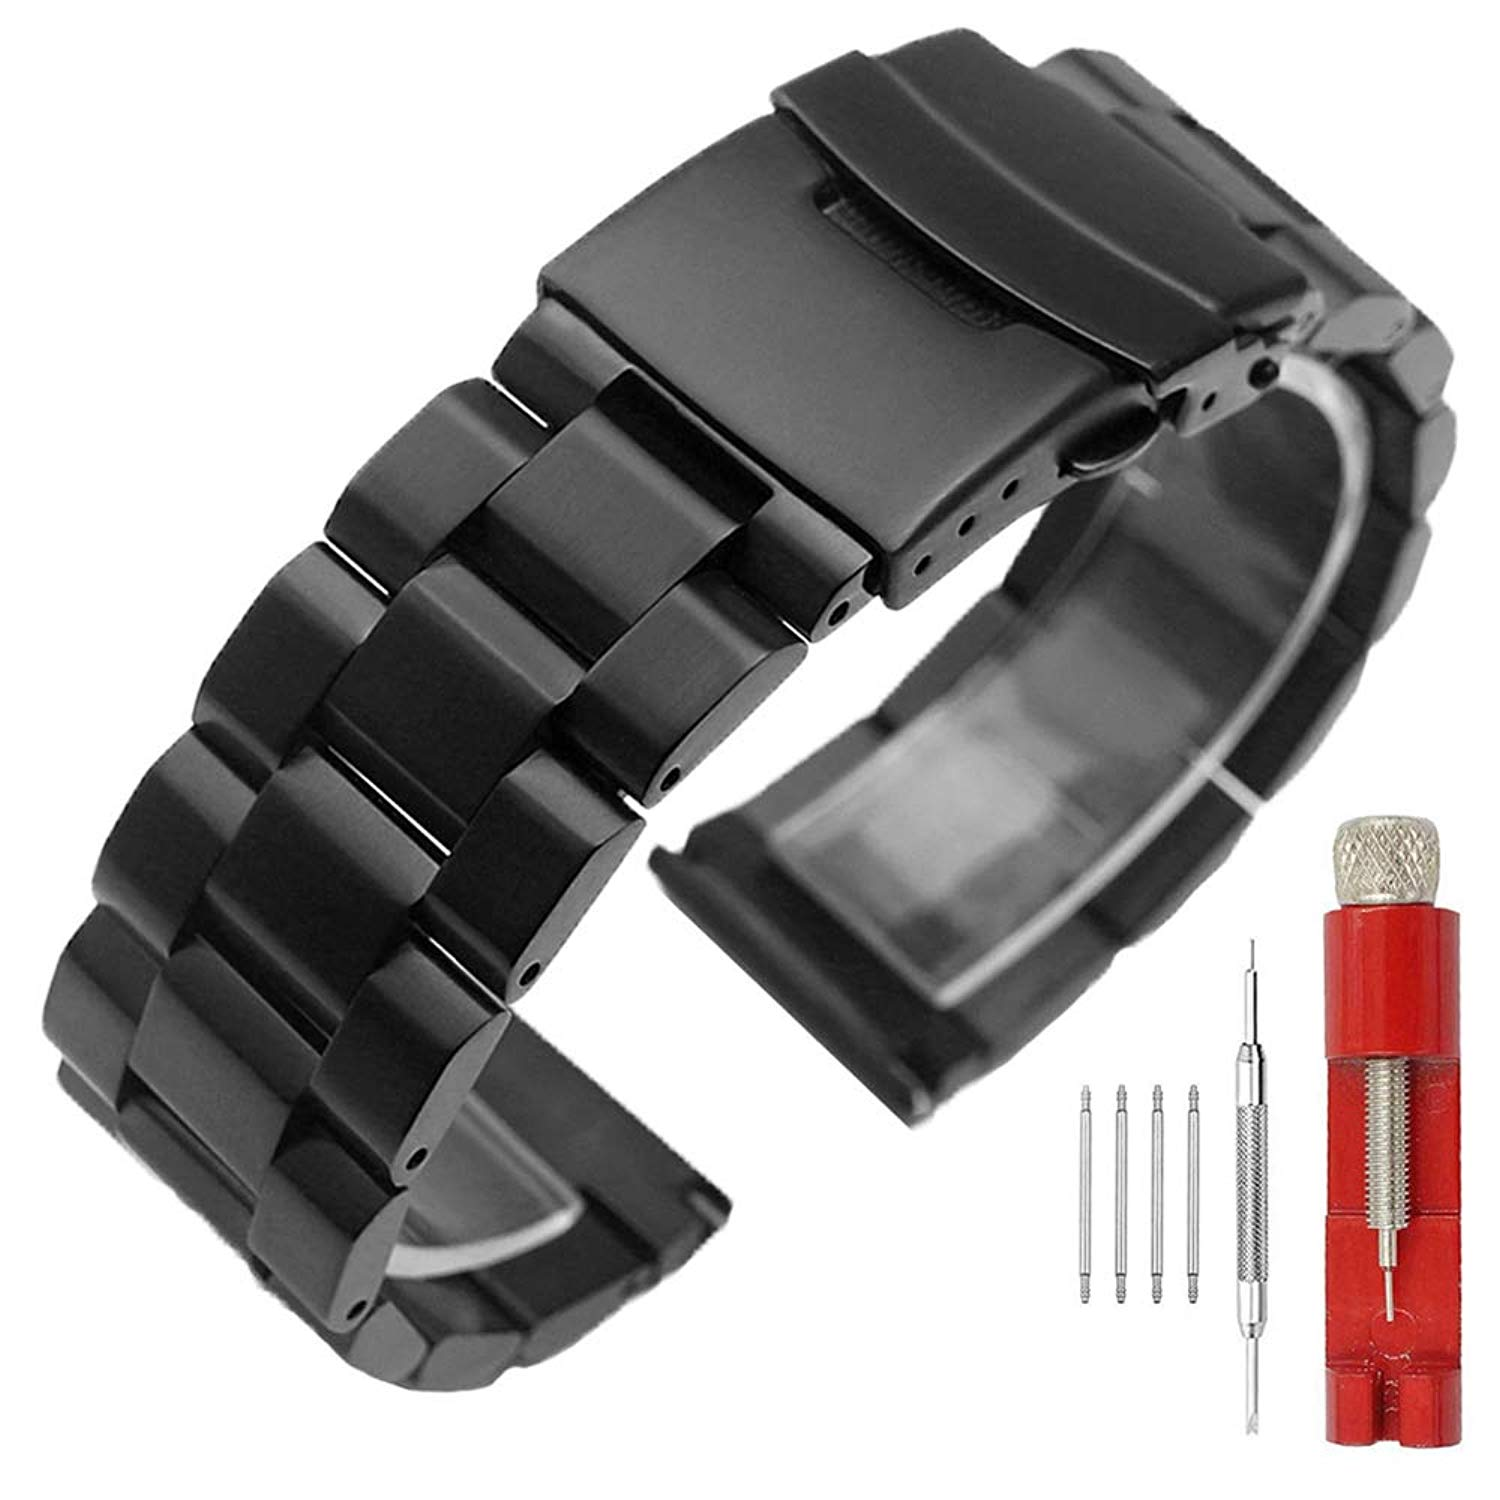 Brush Matte Finish Metal Watch Band Stainless Steel Bracelet Straps 18mm/20mm/22mm/24mm Double Buckle Black or Silver